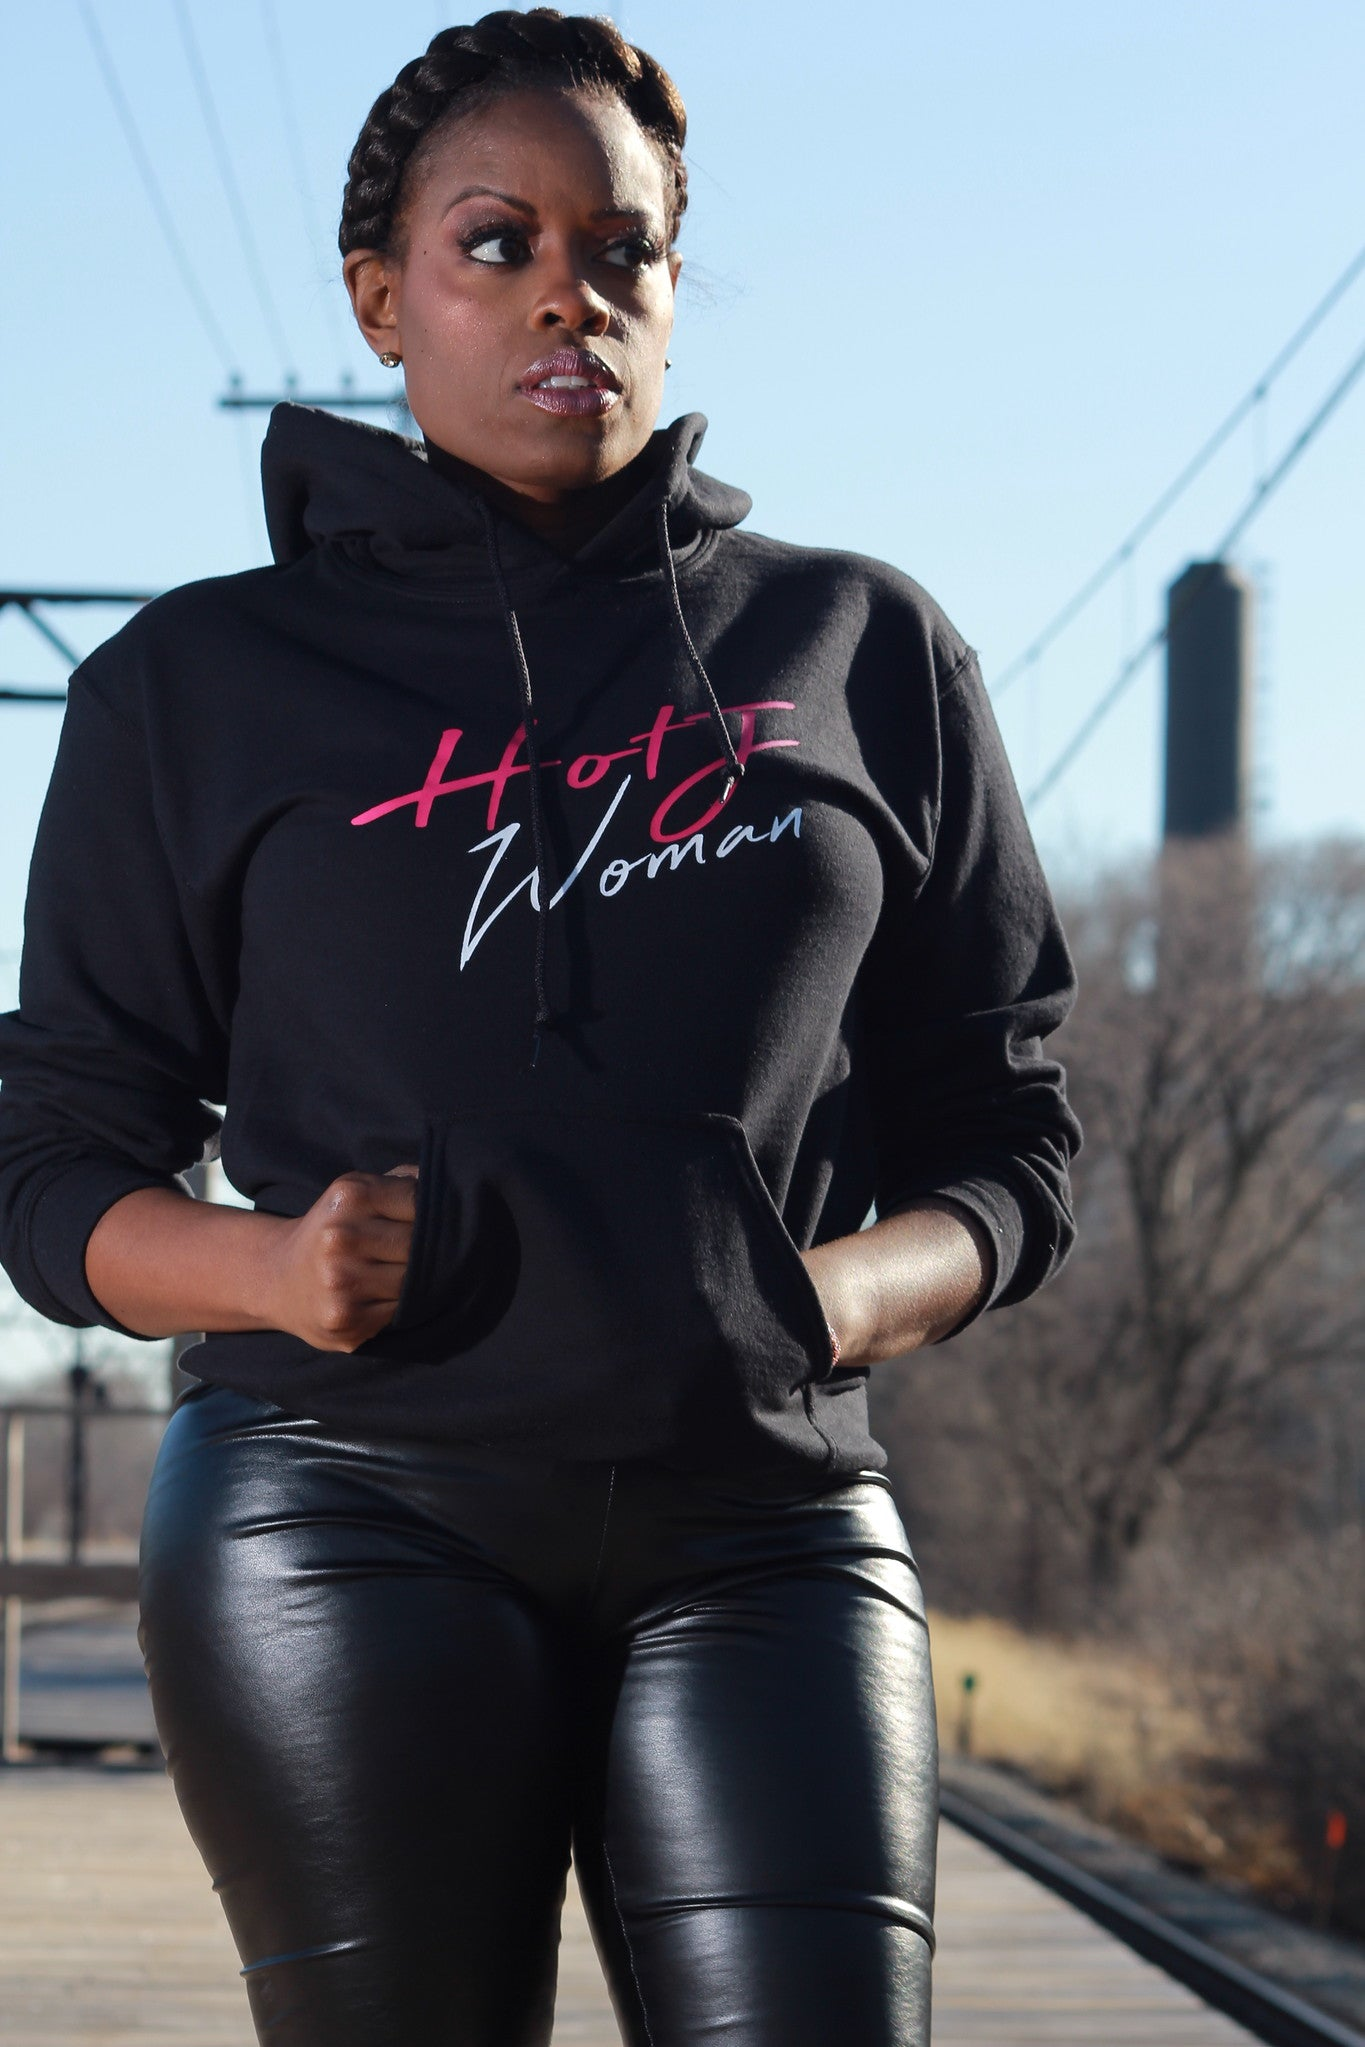 HOTJ Woman Sweatshirt Black